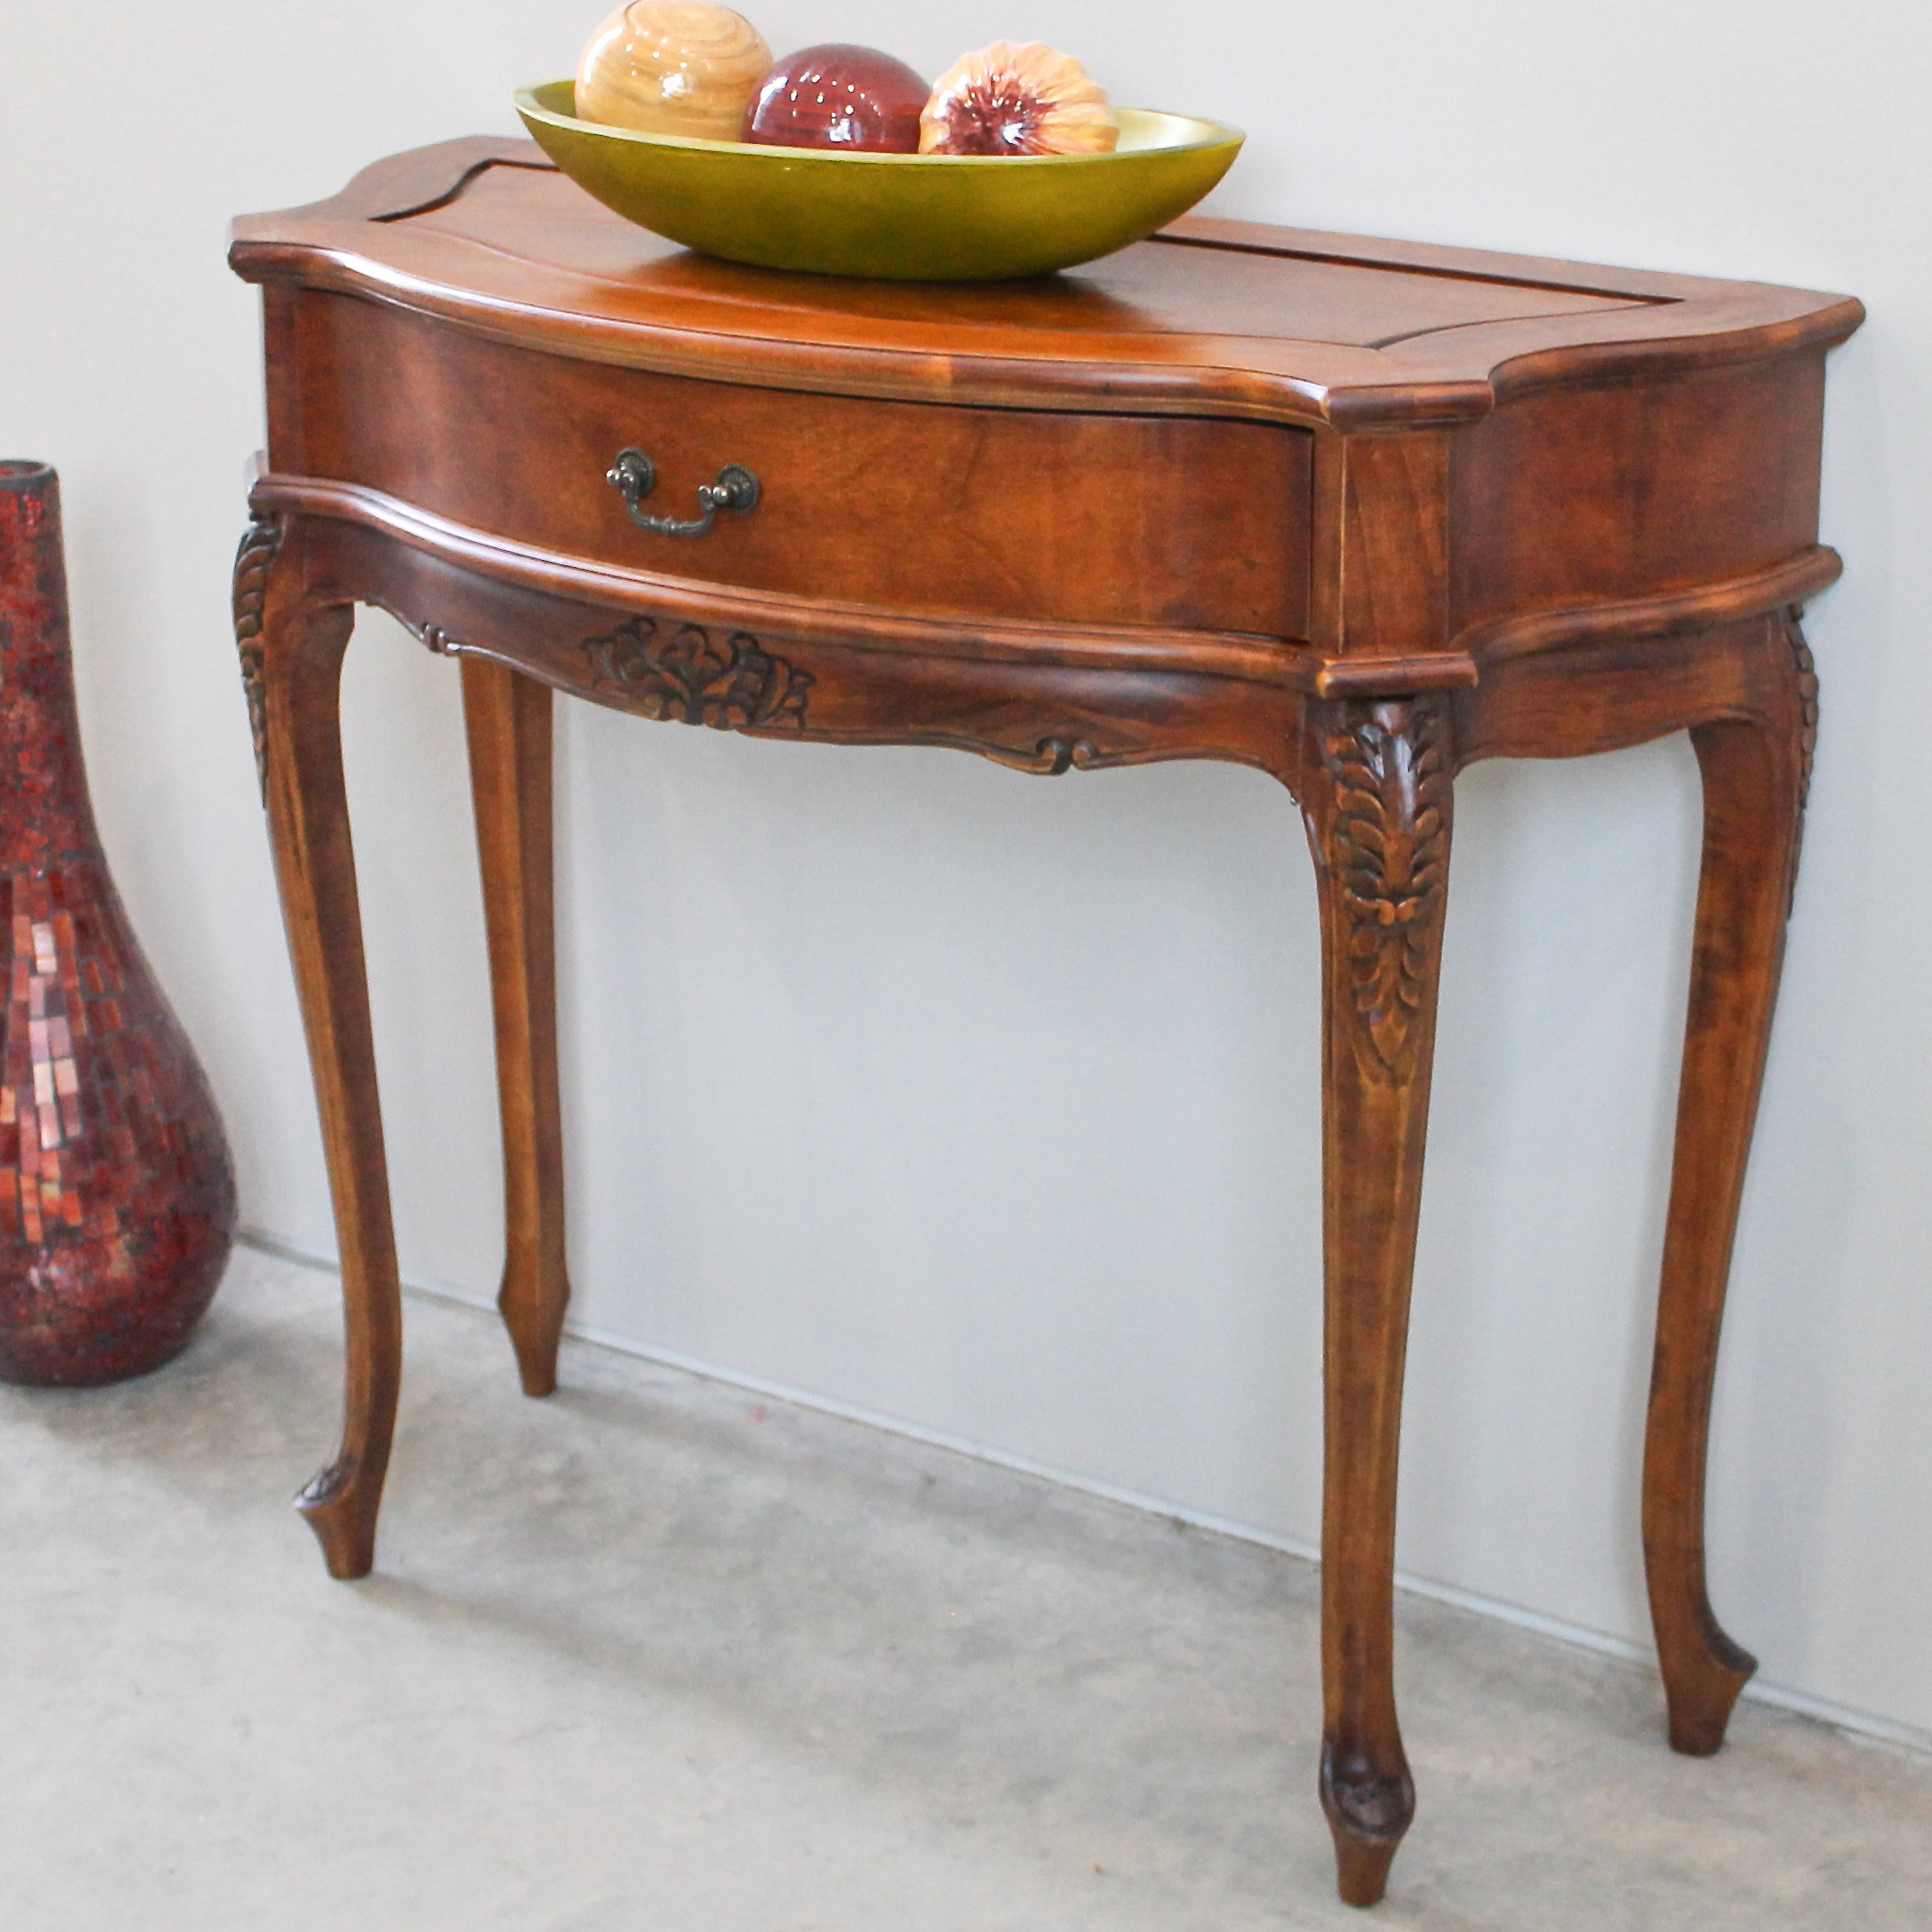 Preferred Balboa Carved Console Tables Intended For Carved Indian Furniture (View 16 of 20)